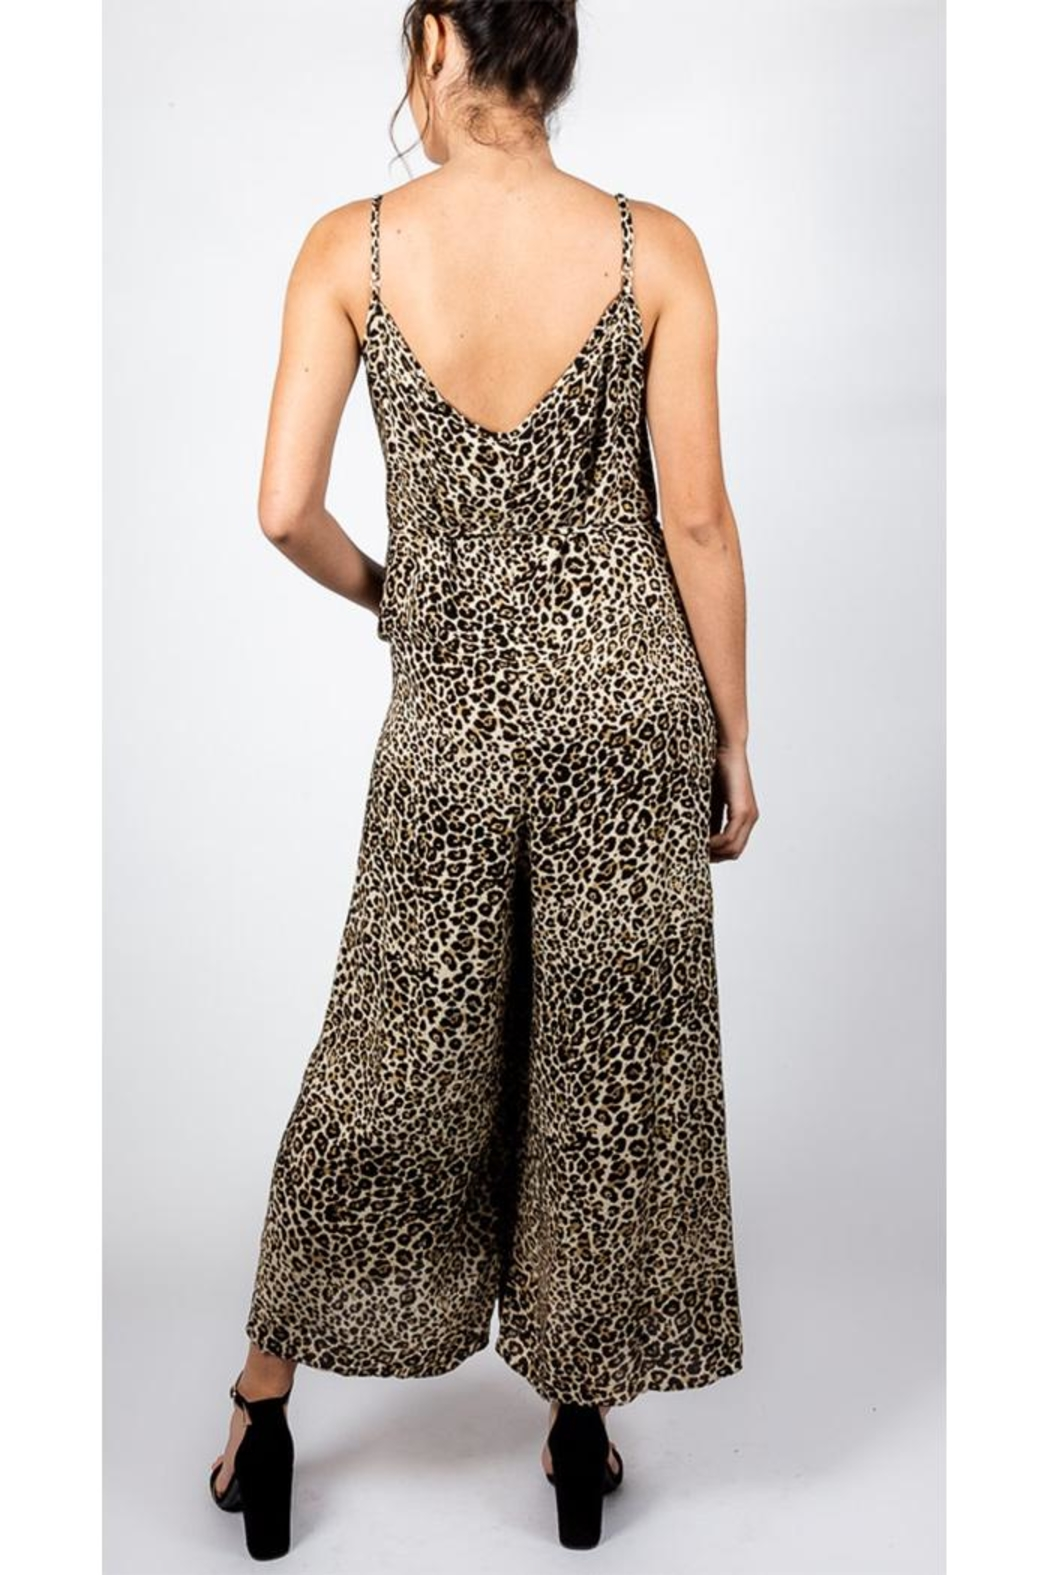 AAKAA Cheetah Chic Jumpsuit - Front Full Image